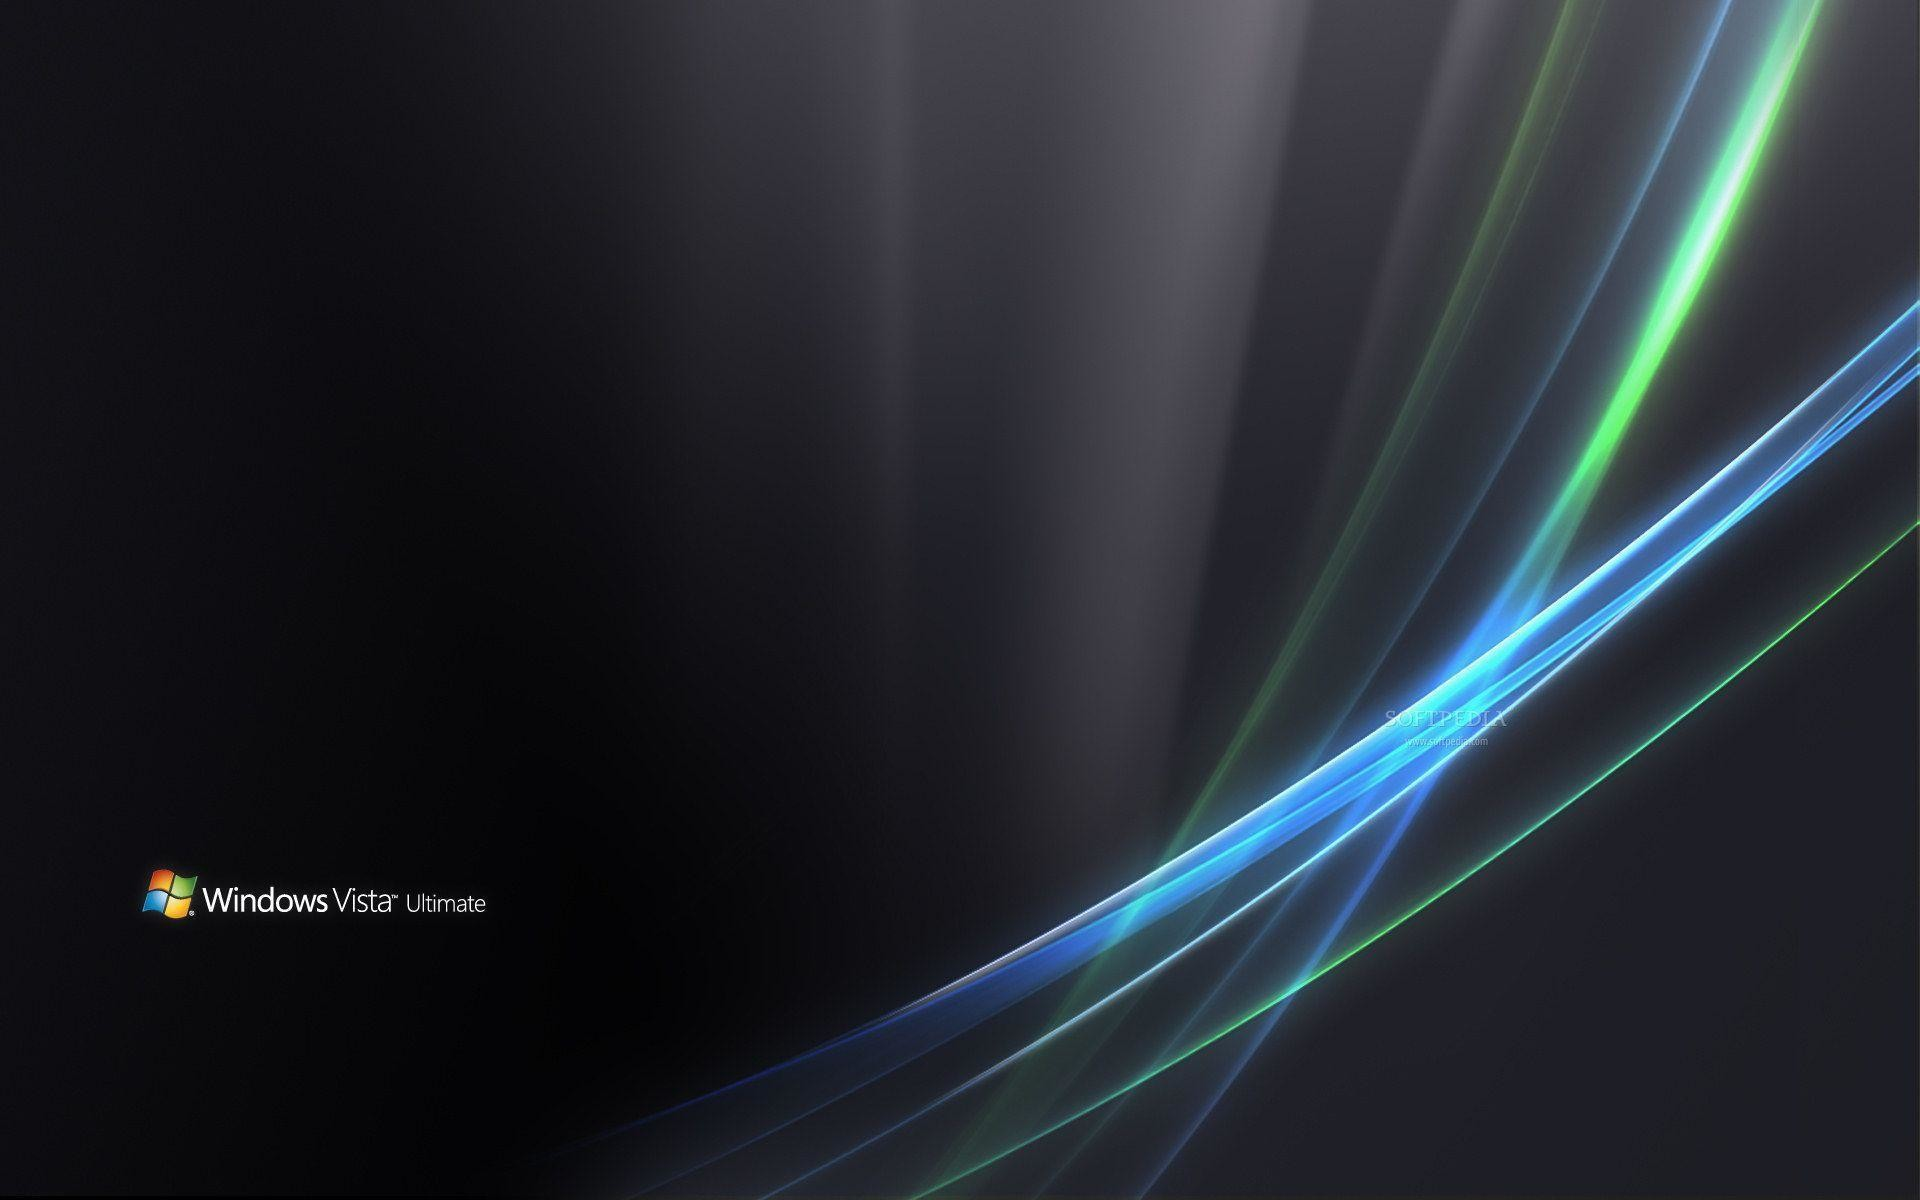 windows 7 ultimate wallpaper 1280x800 64 images